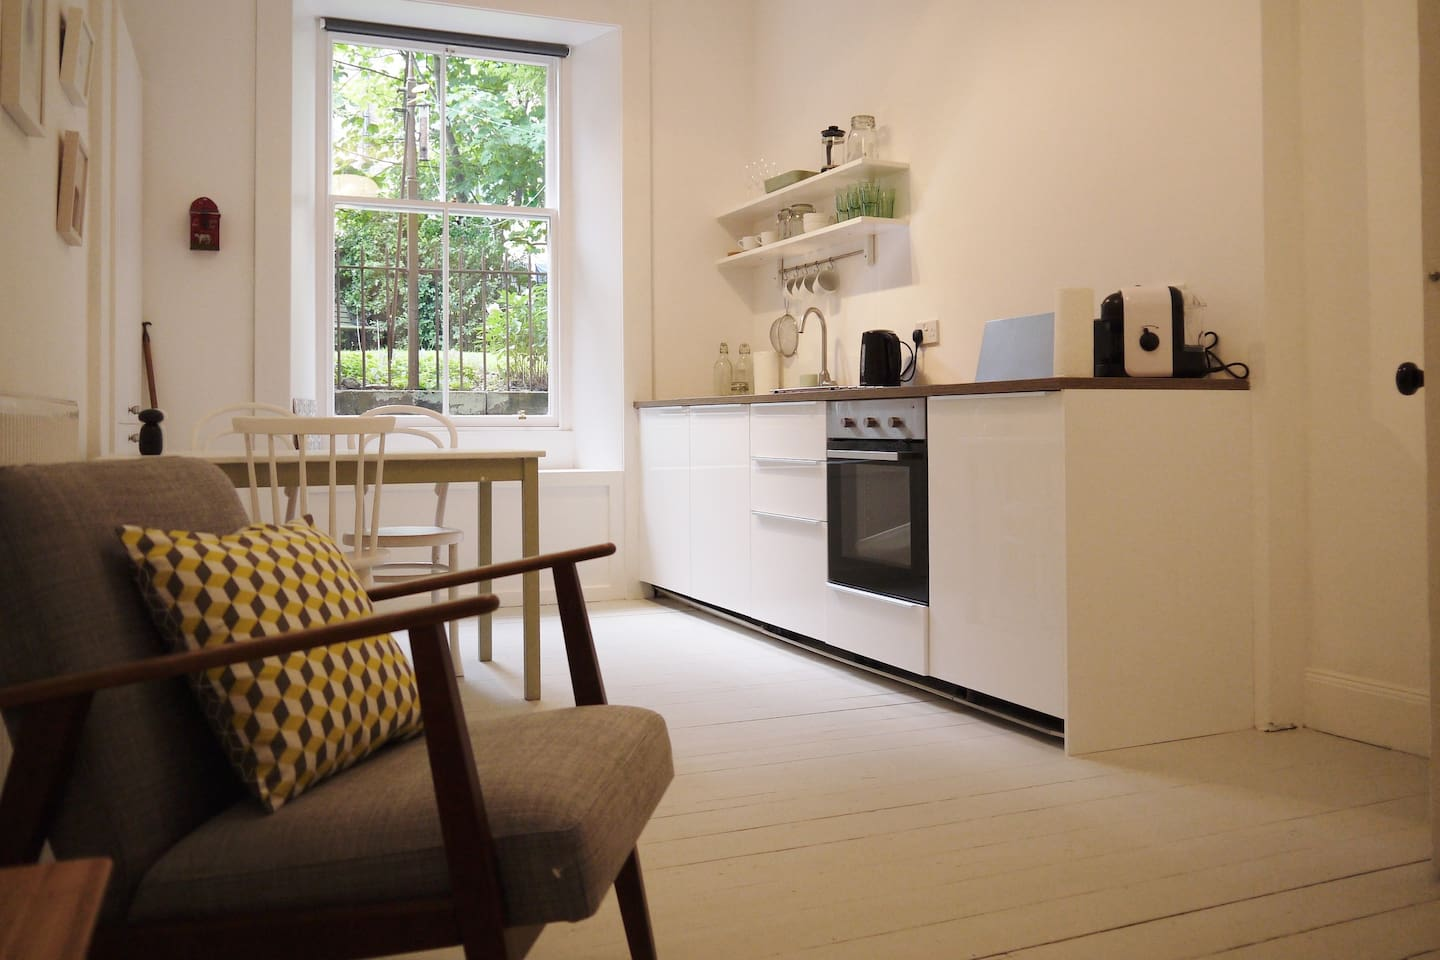 Clean, white kitchen. Lovely view to the garden.